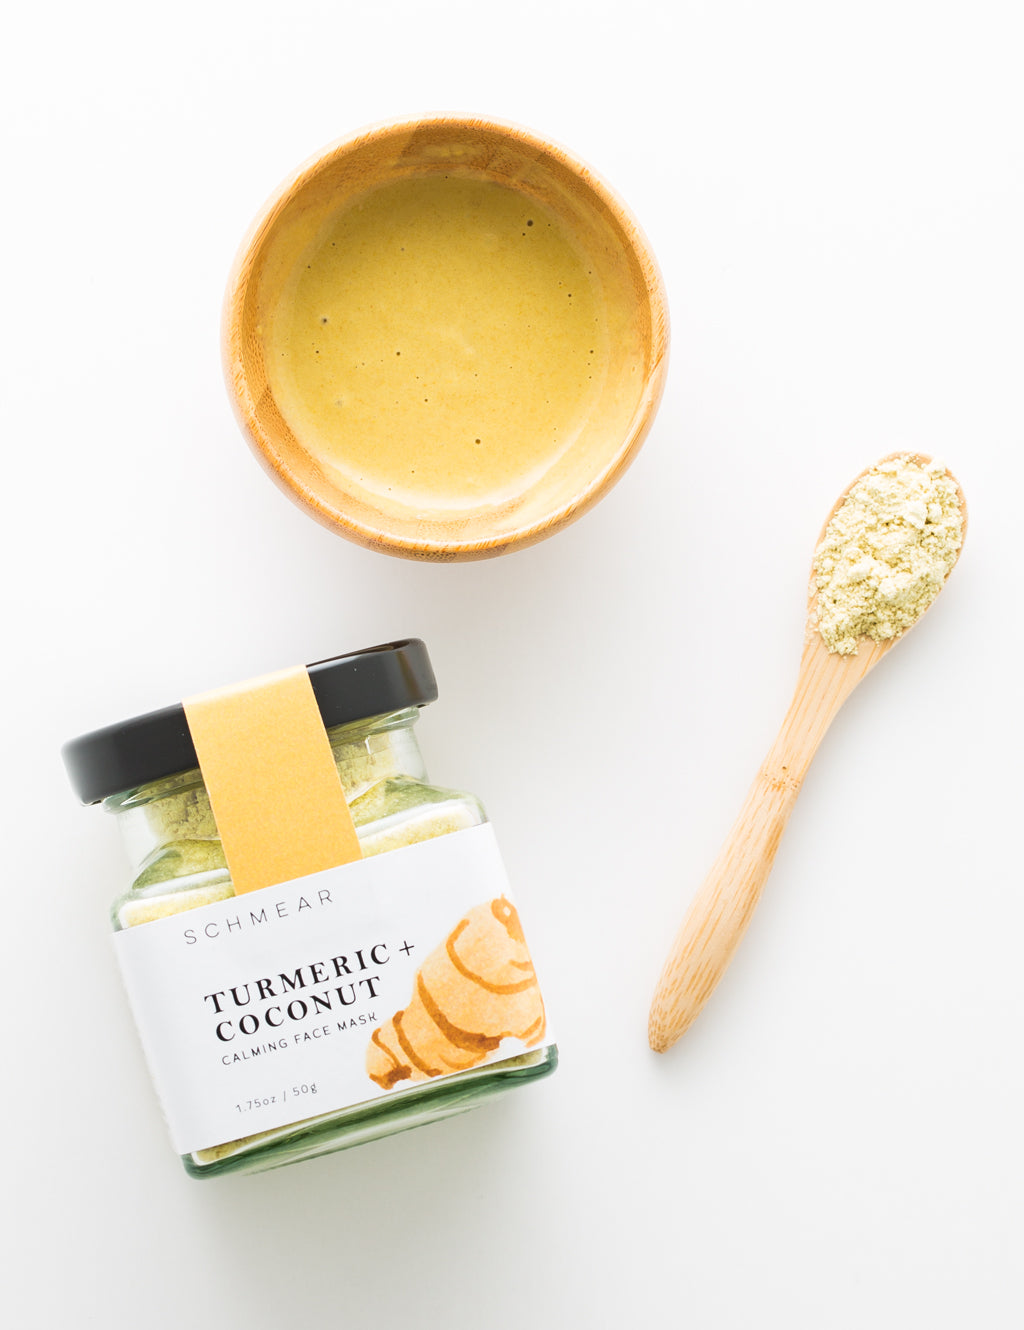 SCHMEAR Naturals Turmeric Coconut Face Mask Powder